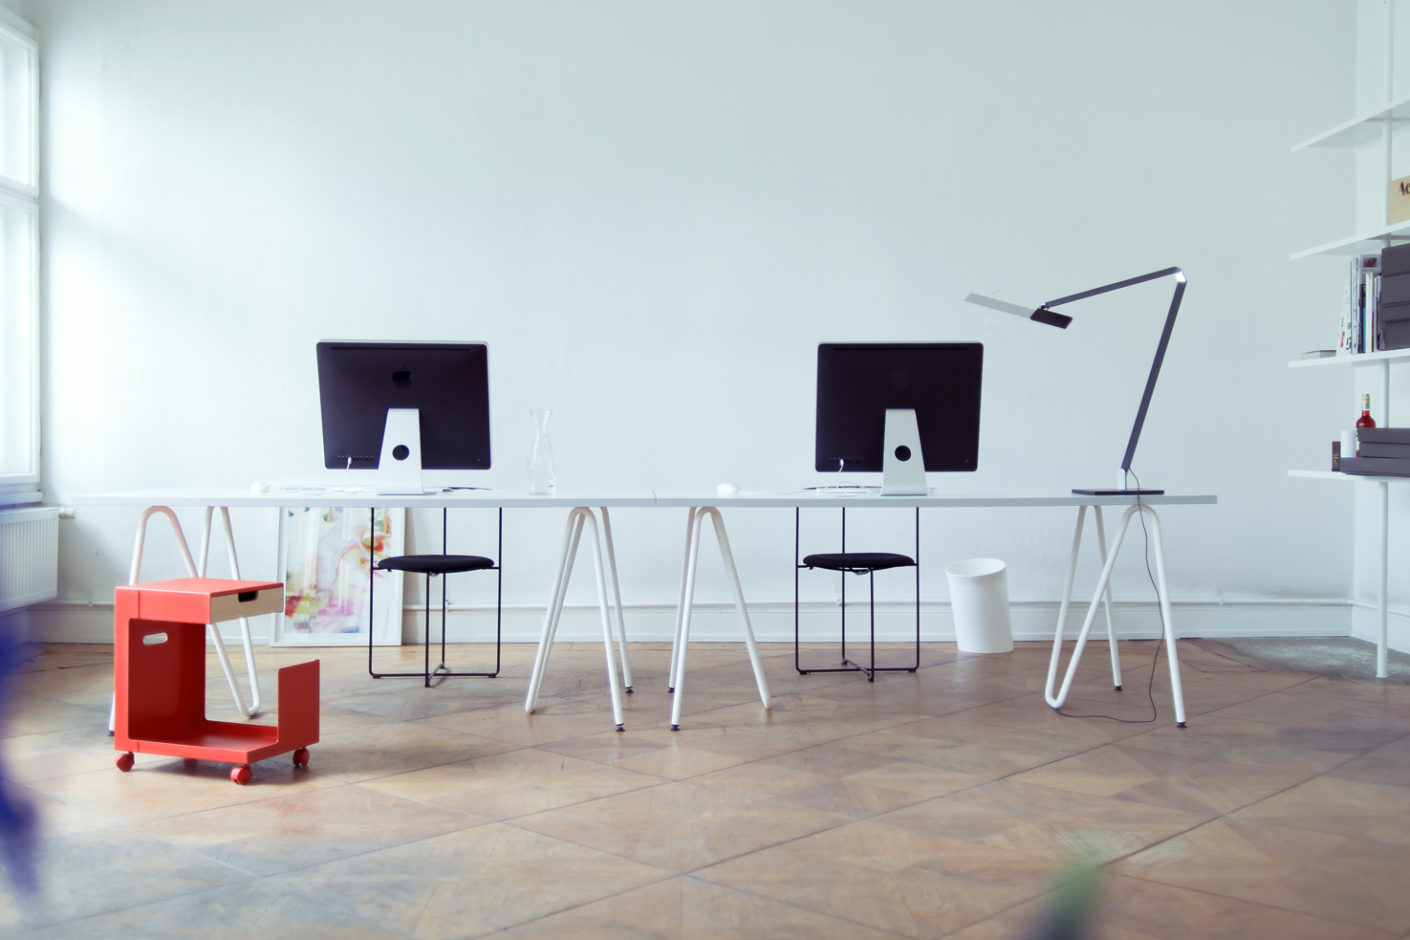 Lightweight and mobile: The office furniture by Daniel Lorch and Aidin Zimmermann from L&Z convince with an original design and is almost flexible.